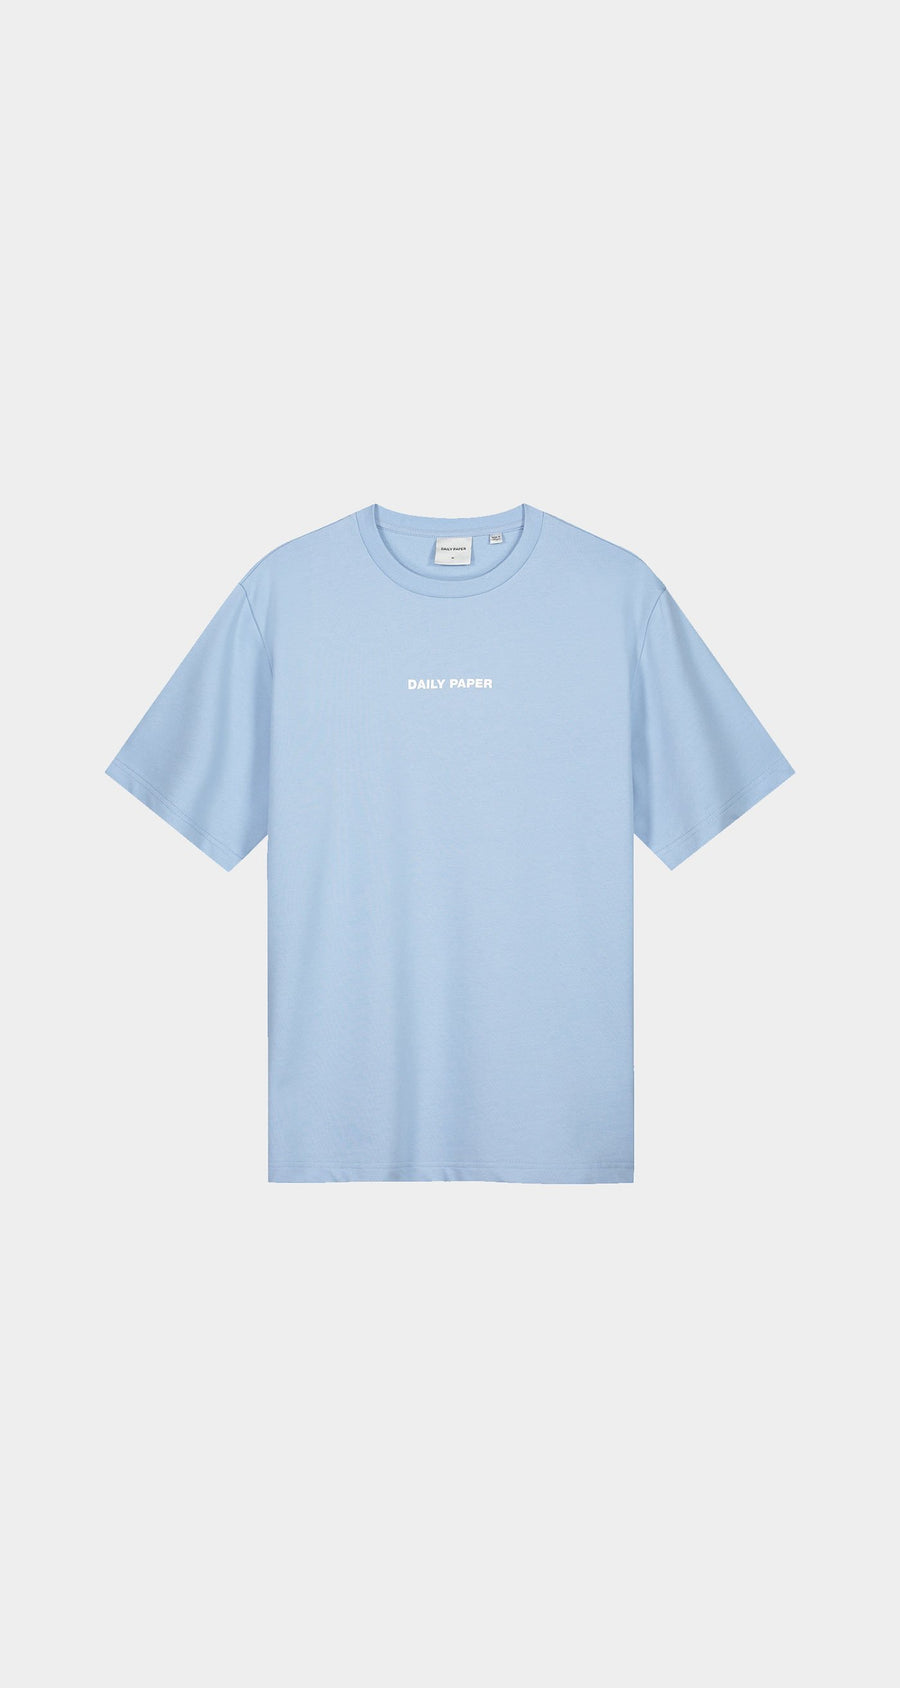 Daily Paper - Chambray Blue Refarid T-Shirt - Women Front